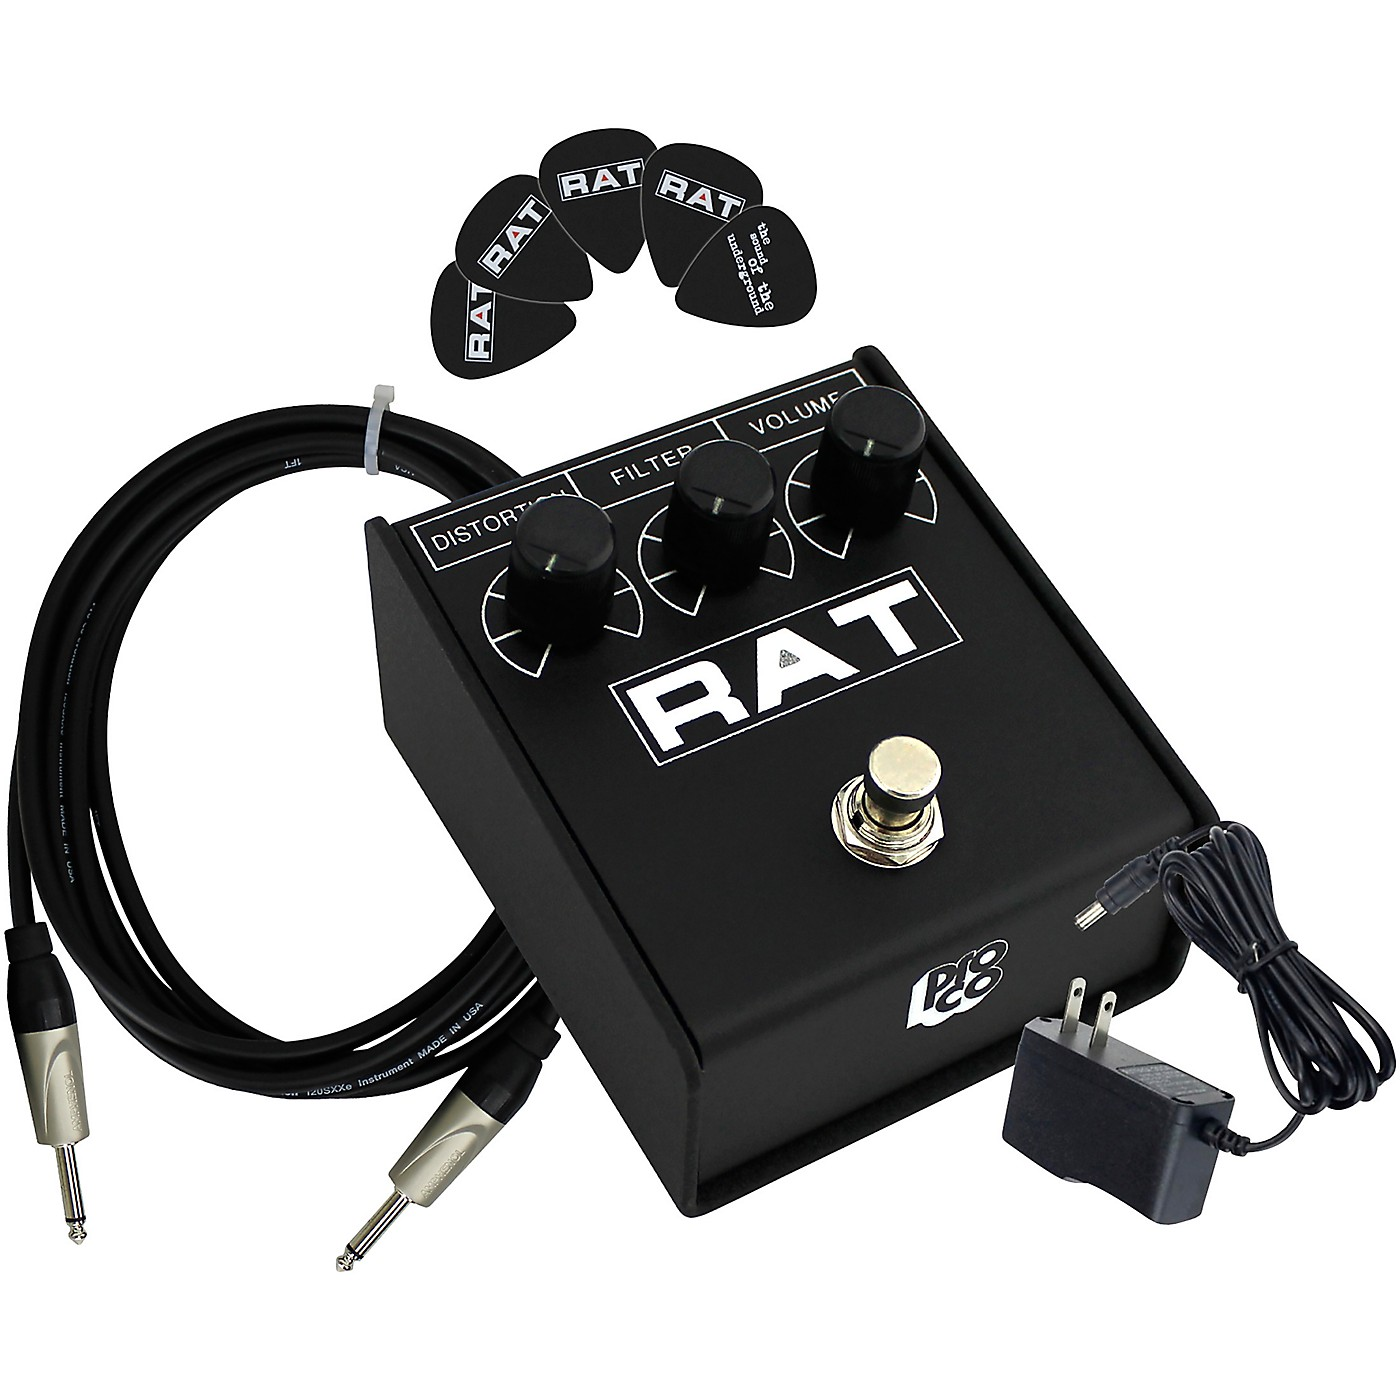 Pro Co Rat2 Distortion Effects Pedal Bundle with Cable, Power Supply, Picks thumbnail